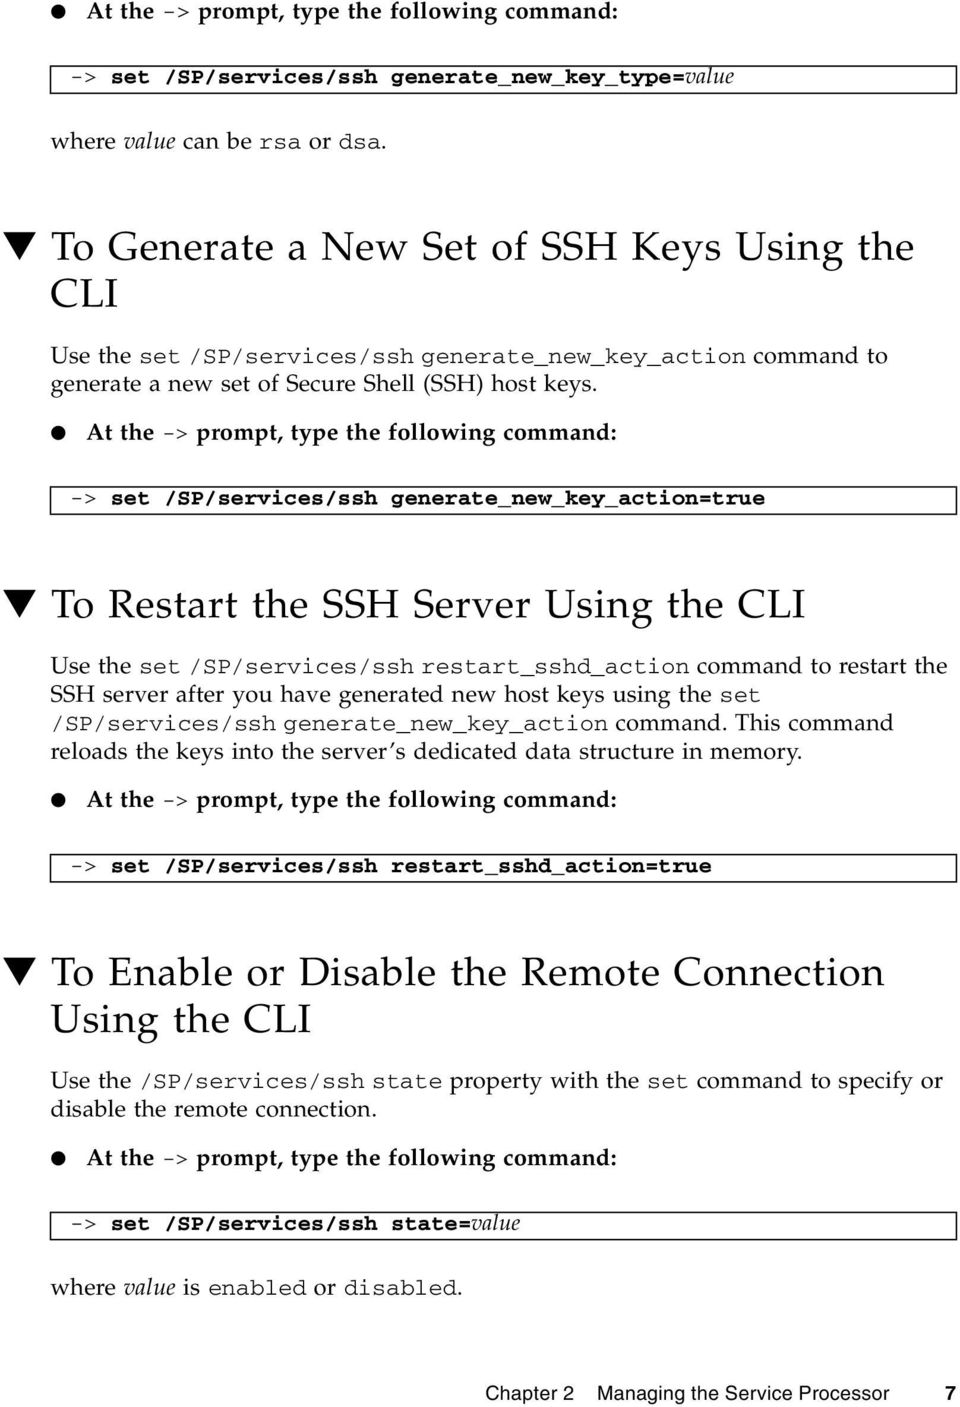 At the -> prompt, type the following command: -> set /SP/services/ssh generate_new_key_action=true To Restart the SSH Server Using the CLI Use the set /SP/services/ssh restart_sshd_action command to